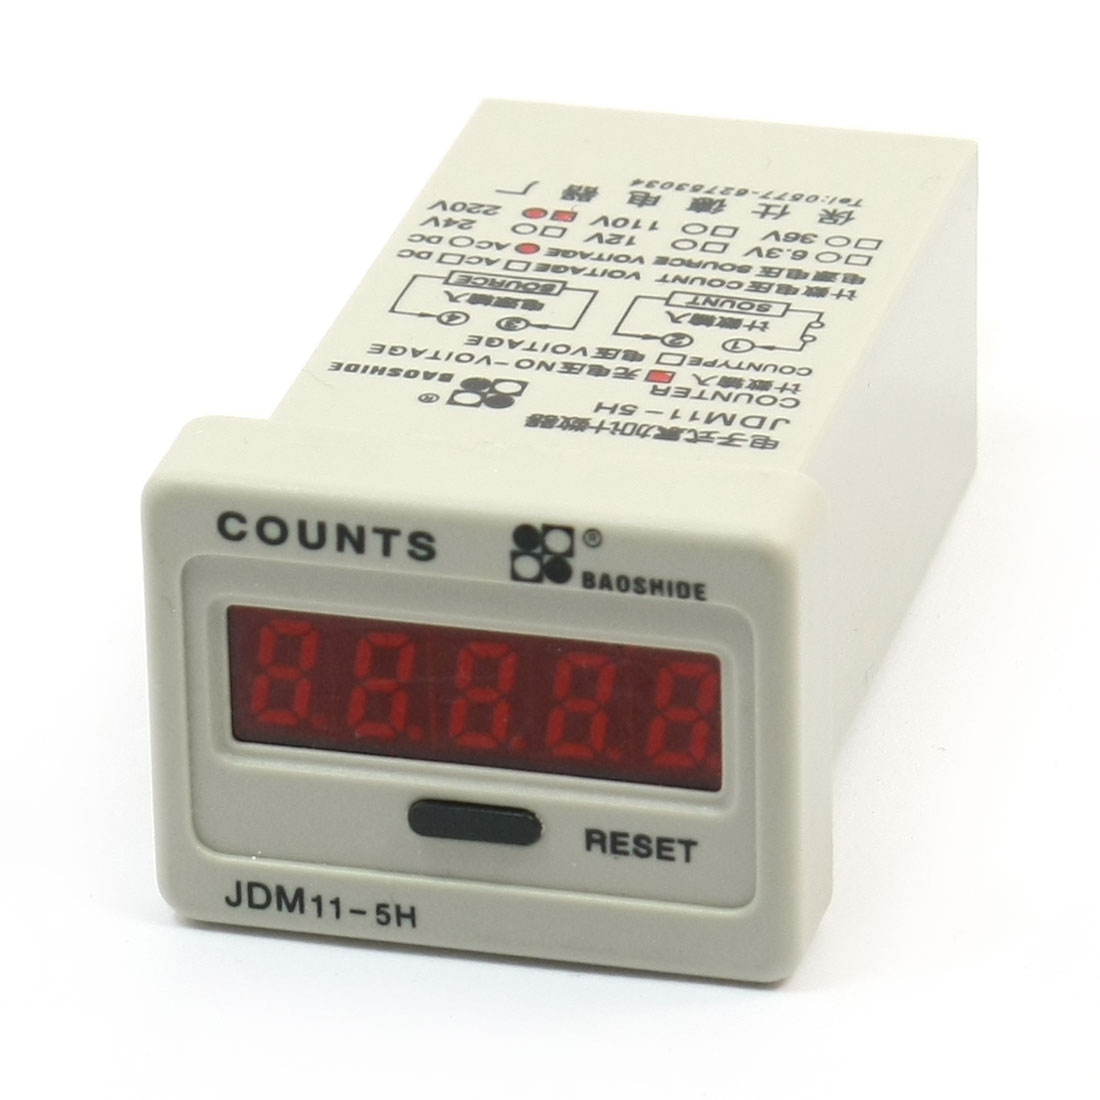 JDM11-5H 220VAC 5 Digits No-Voltage Input LED Display Accumulating Counter